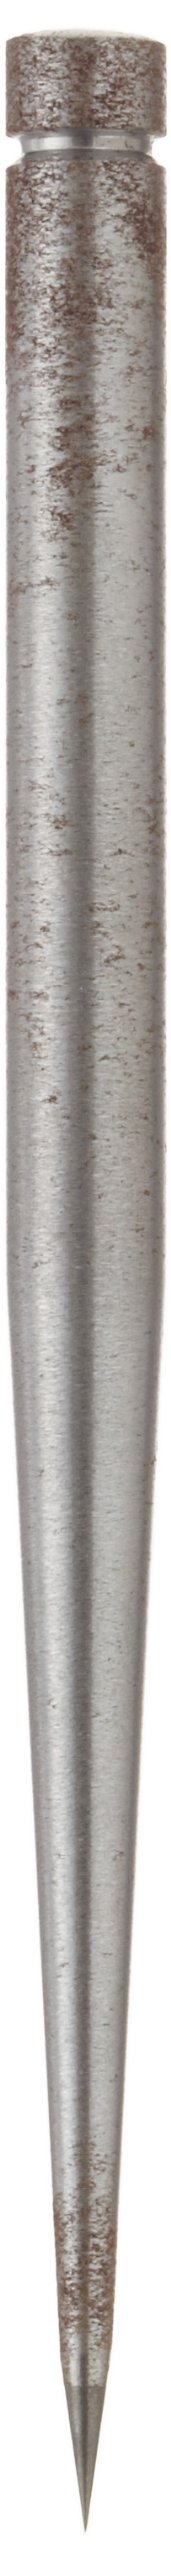 Starrett PT19306 Carbide Point For Pocket Scriber No. 70BX by Starrett